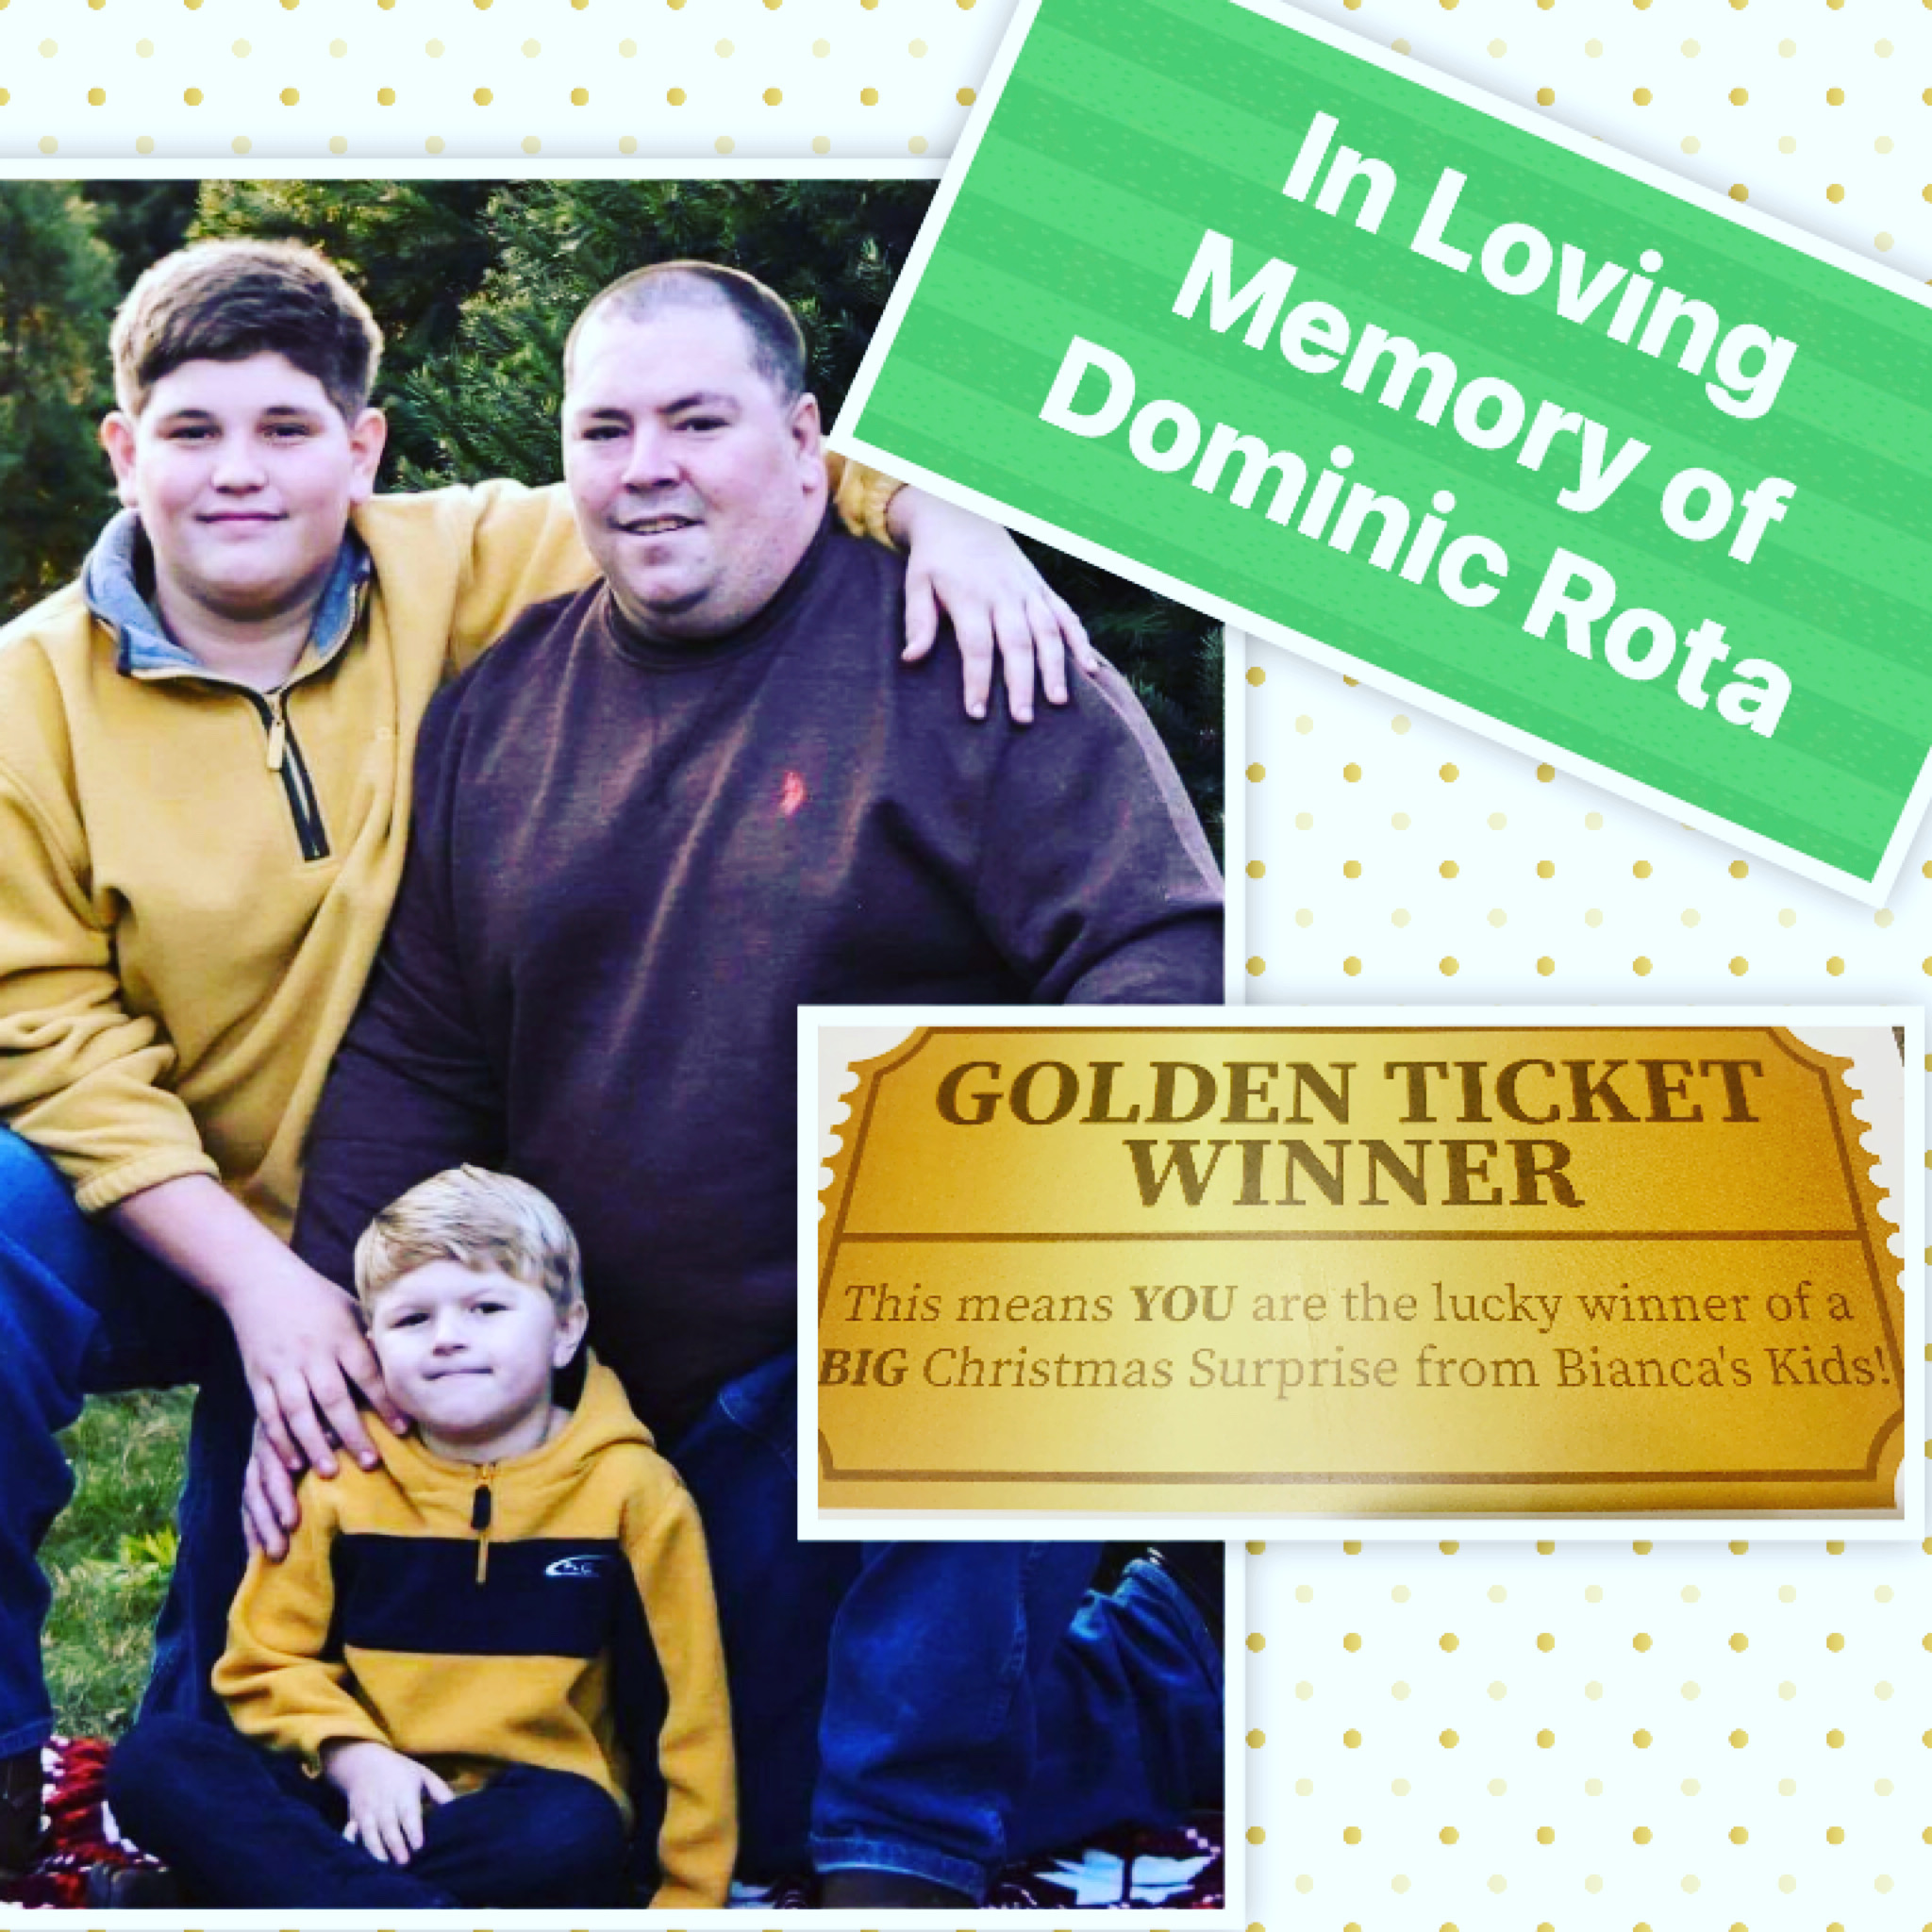 OUR 1st GOLDEN TICKET WINNERS ARE THE CHILDREN OF THE LATE DOMINIC ROTA